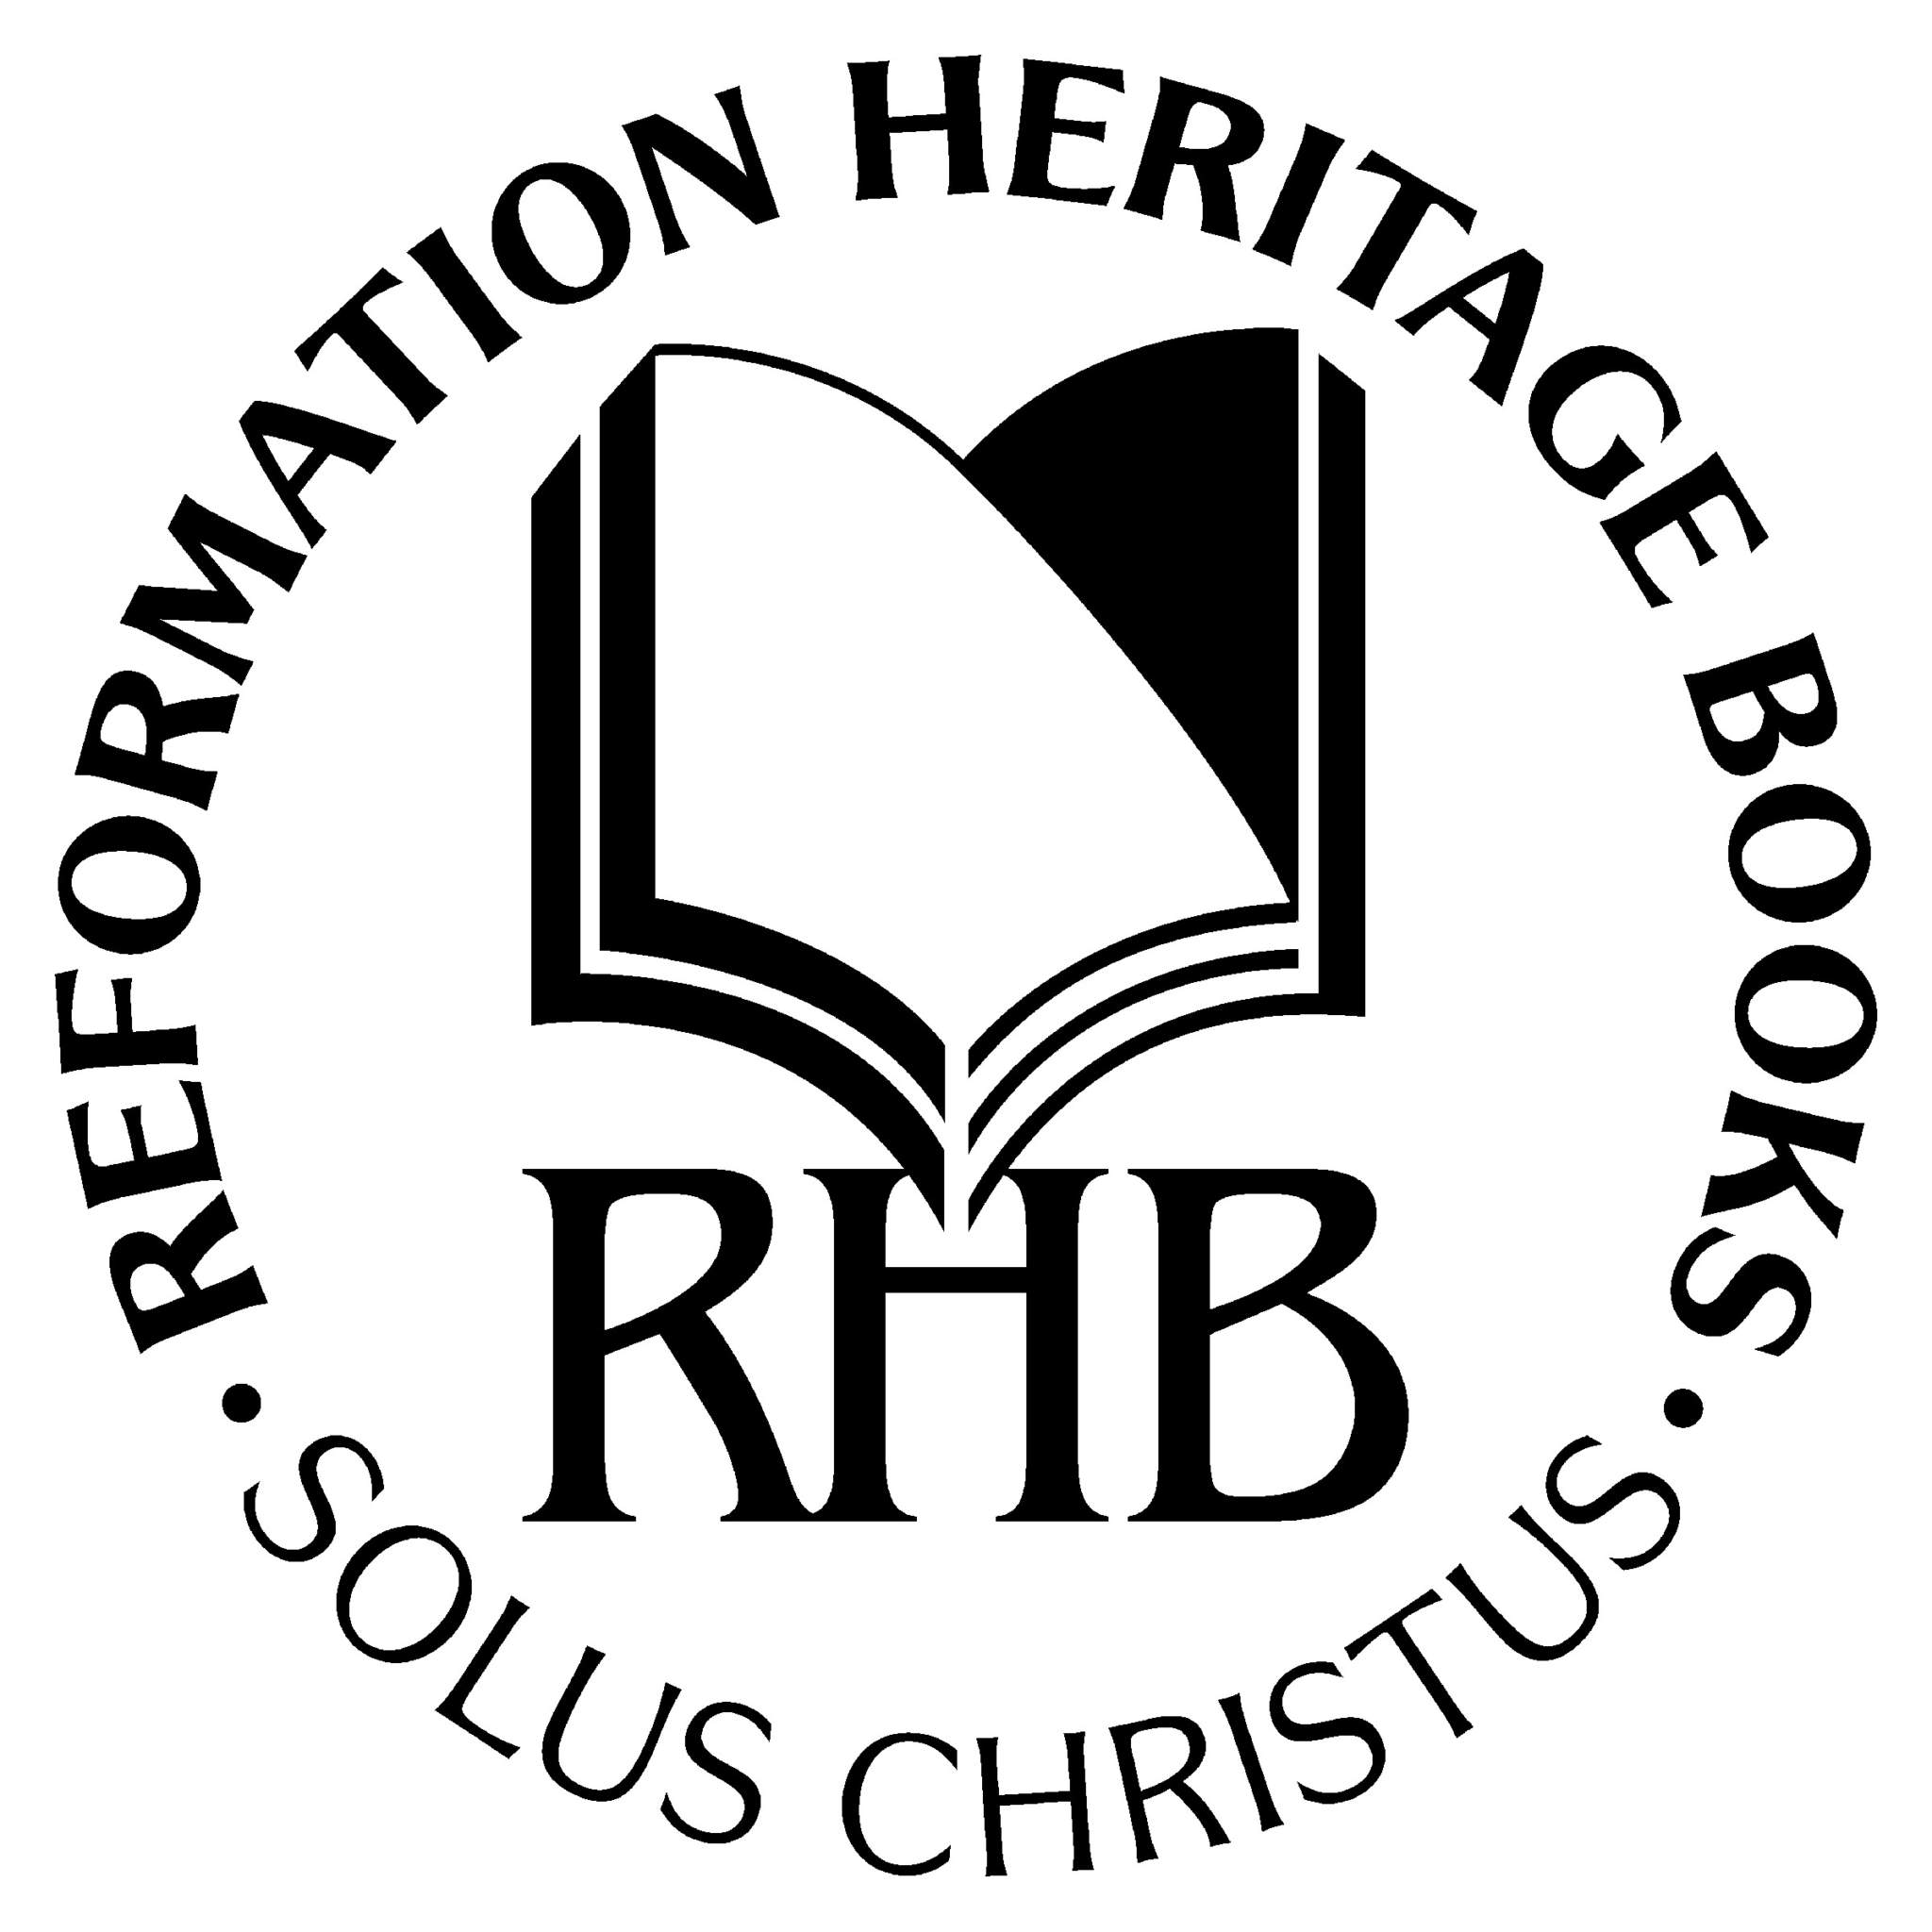 Buy Now: Reformation Heritage Books